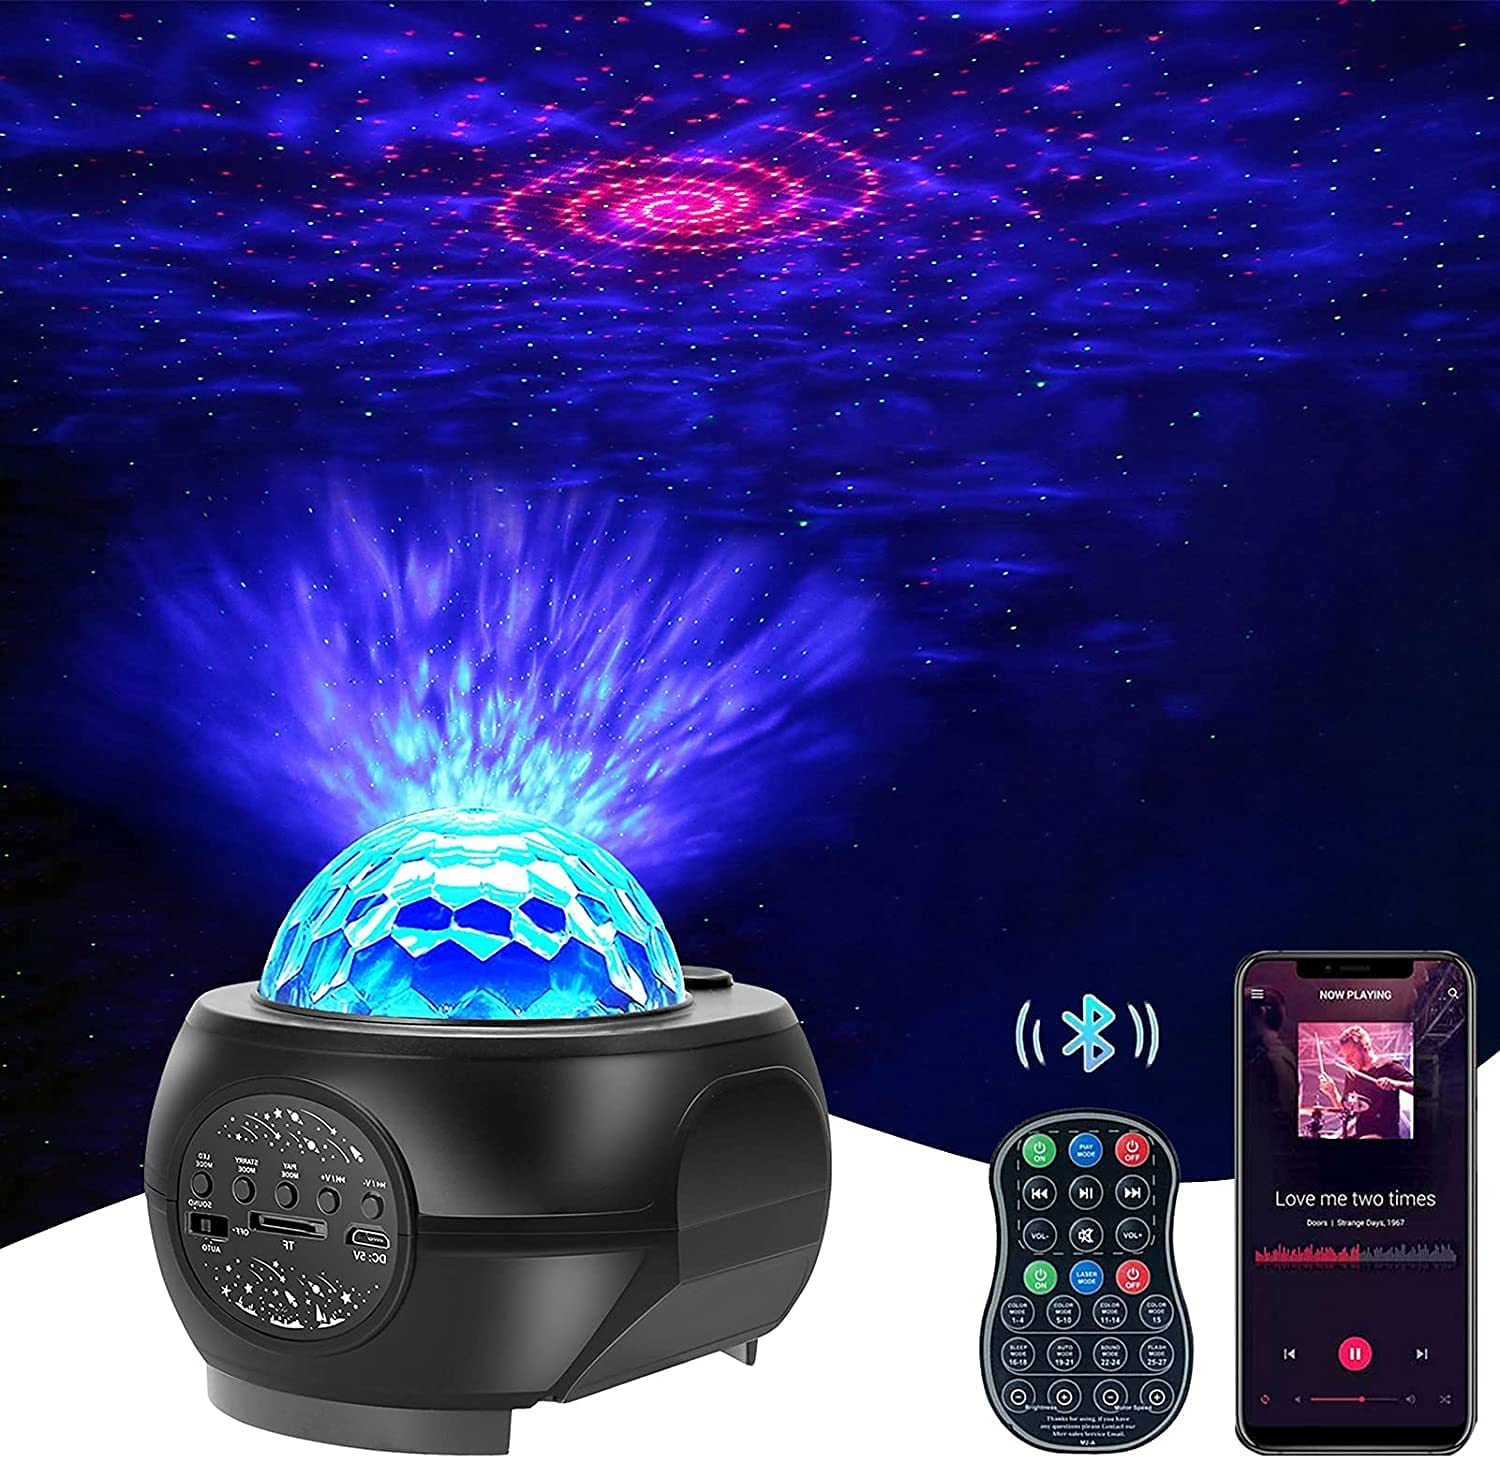 KFK Galaxy Projector, Galaxy Star Night Light Ambiance Projector for Bedroom, Room Decor, Home Theater, Party Ceiling, with Bluetooth Music Speaker, Voice & Remote Control, Great Gift for Kids Adults